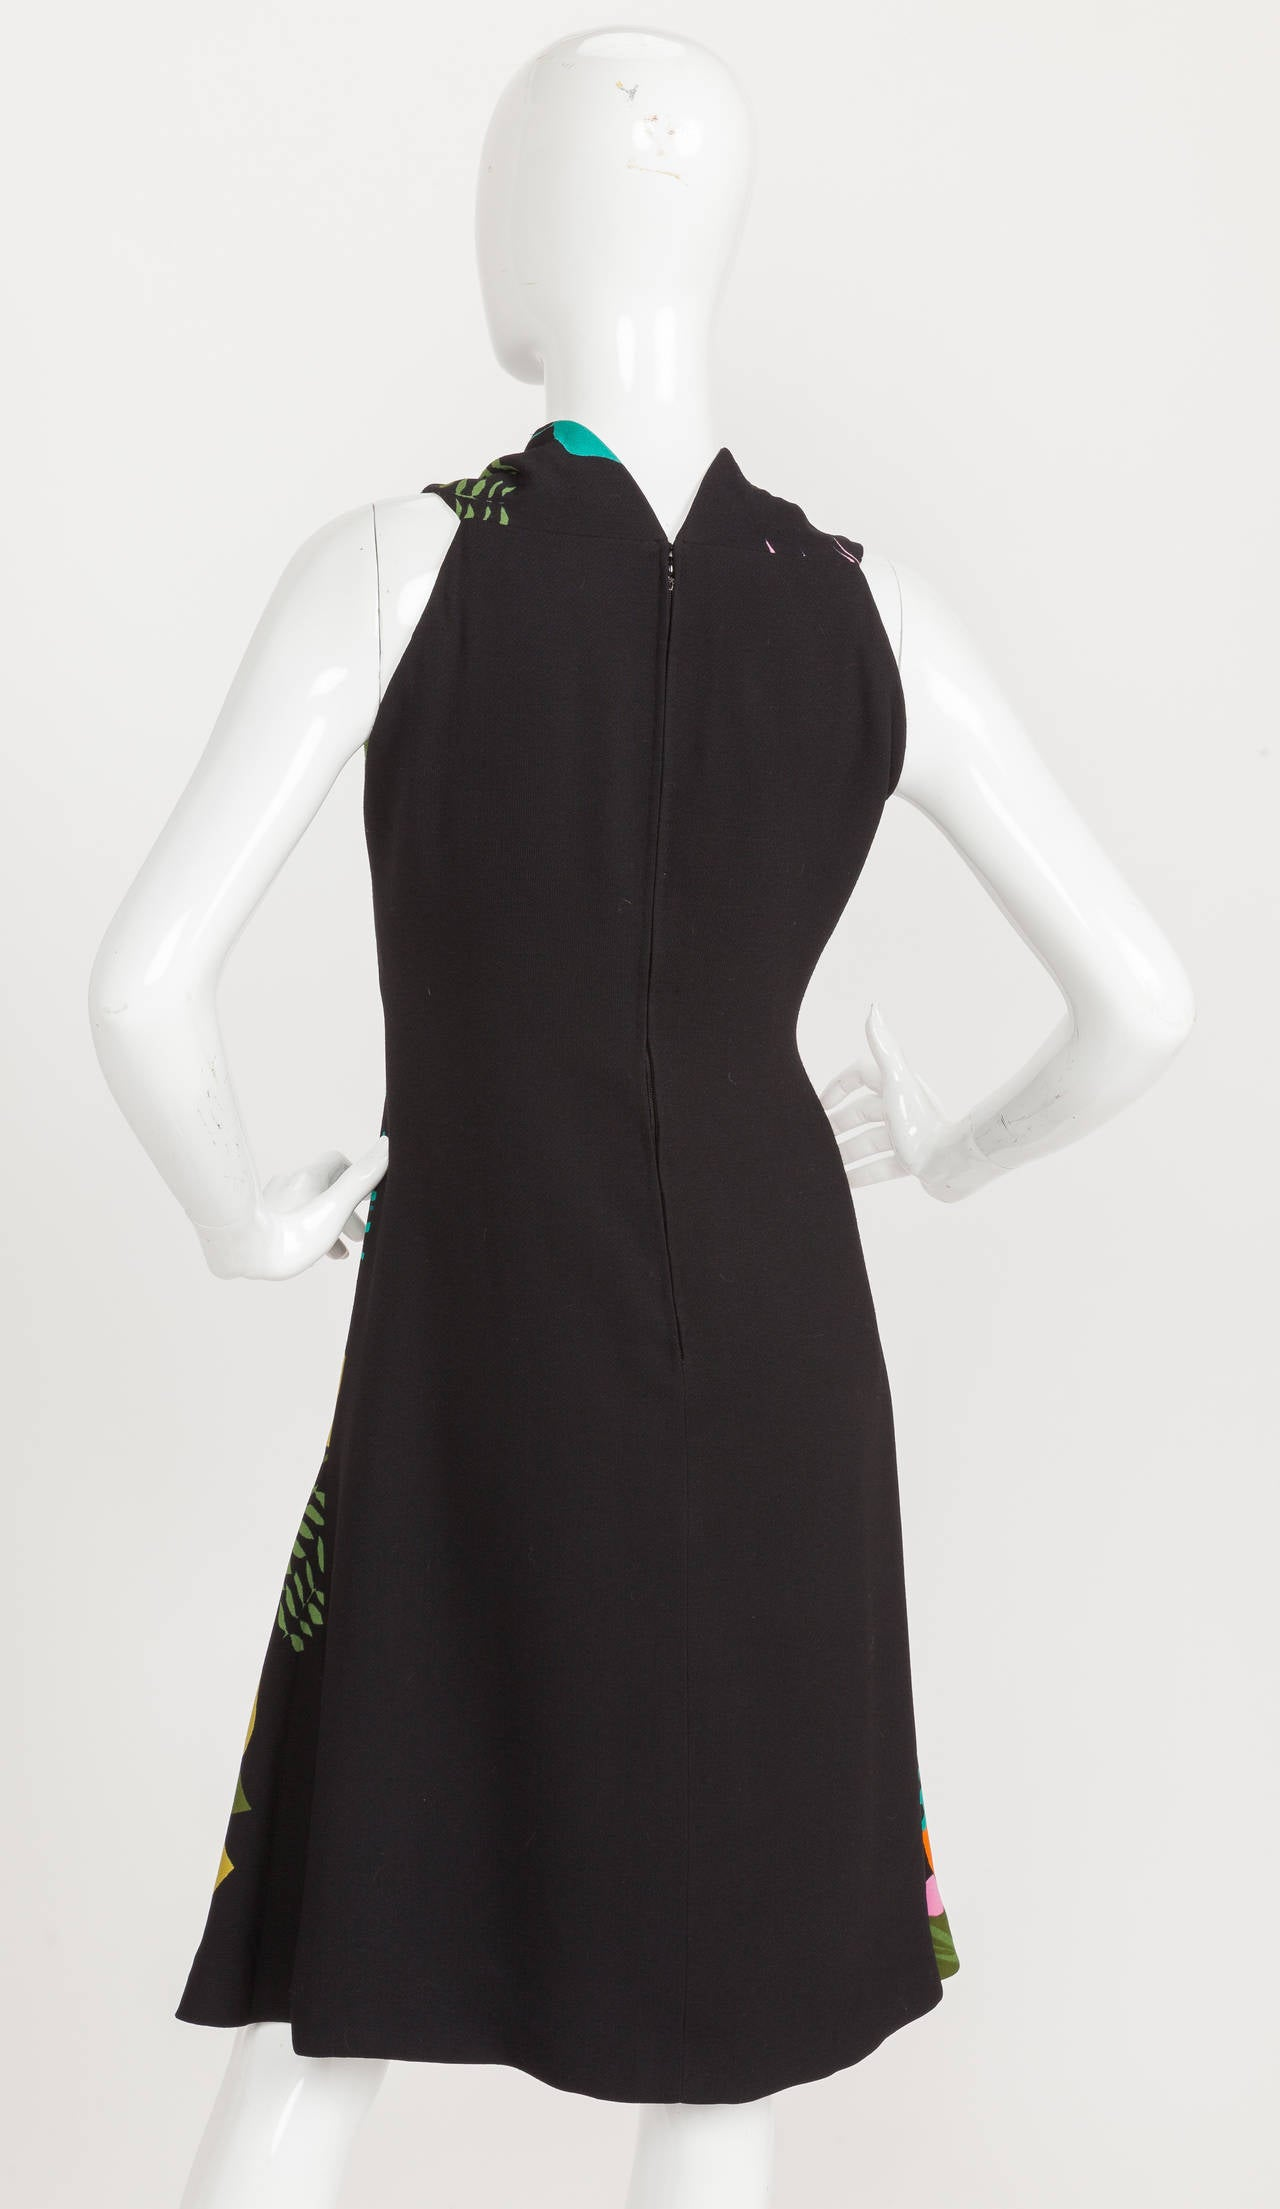 Pauline Trigere Sleeveless Floral Cocktail Day Dress ca. late 1970s/early 1980s For Sale 2